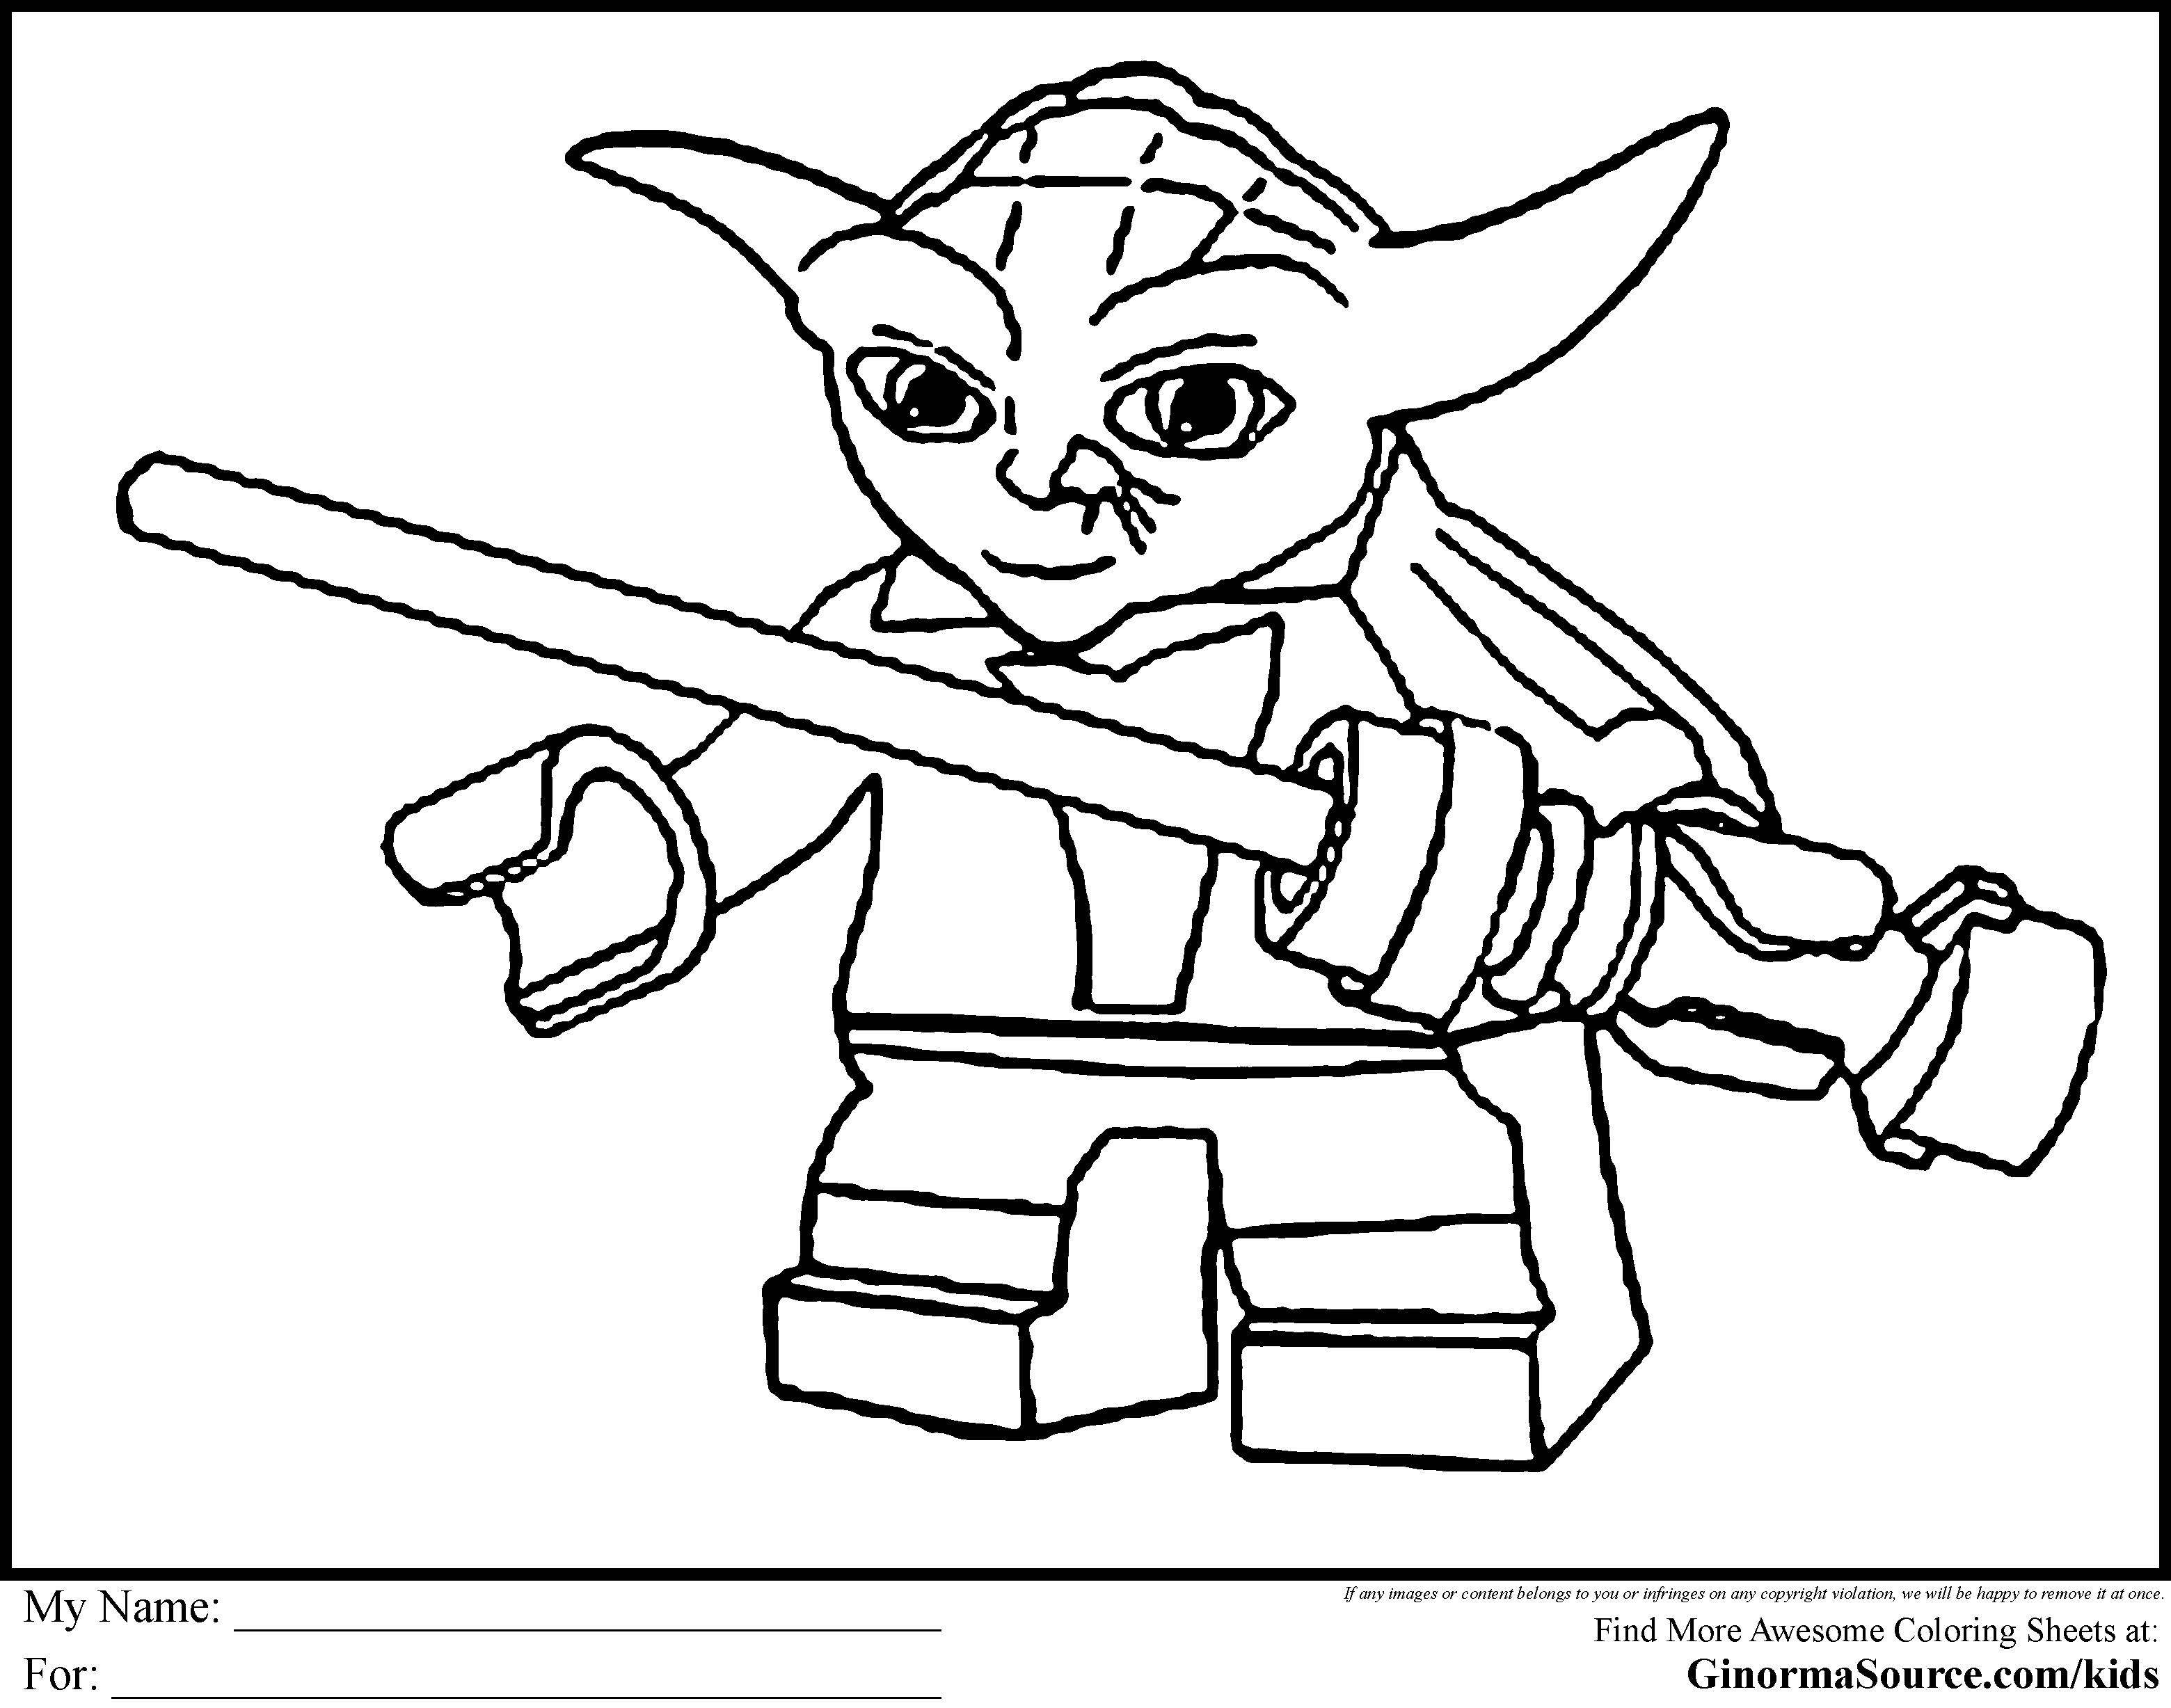 Lego star wars coloring pages to download and print for free for Free printable lego coloring pages for kids